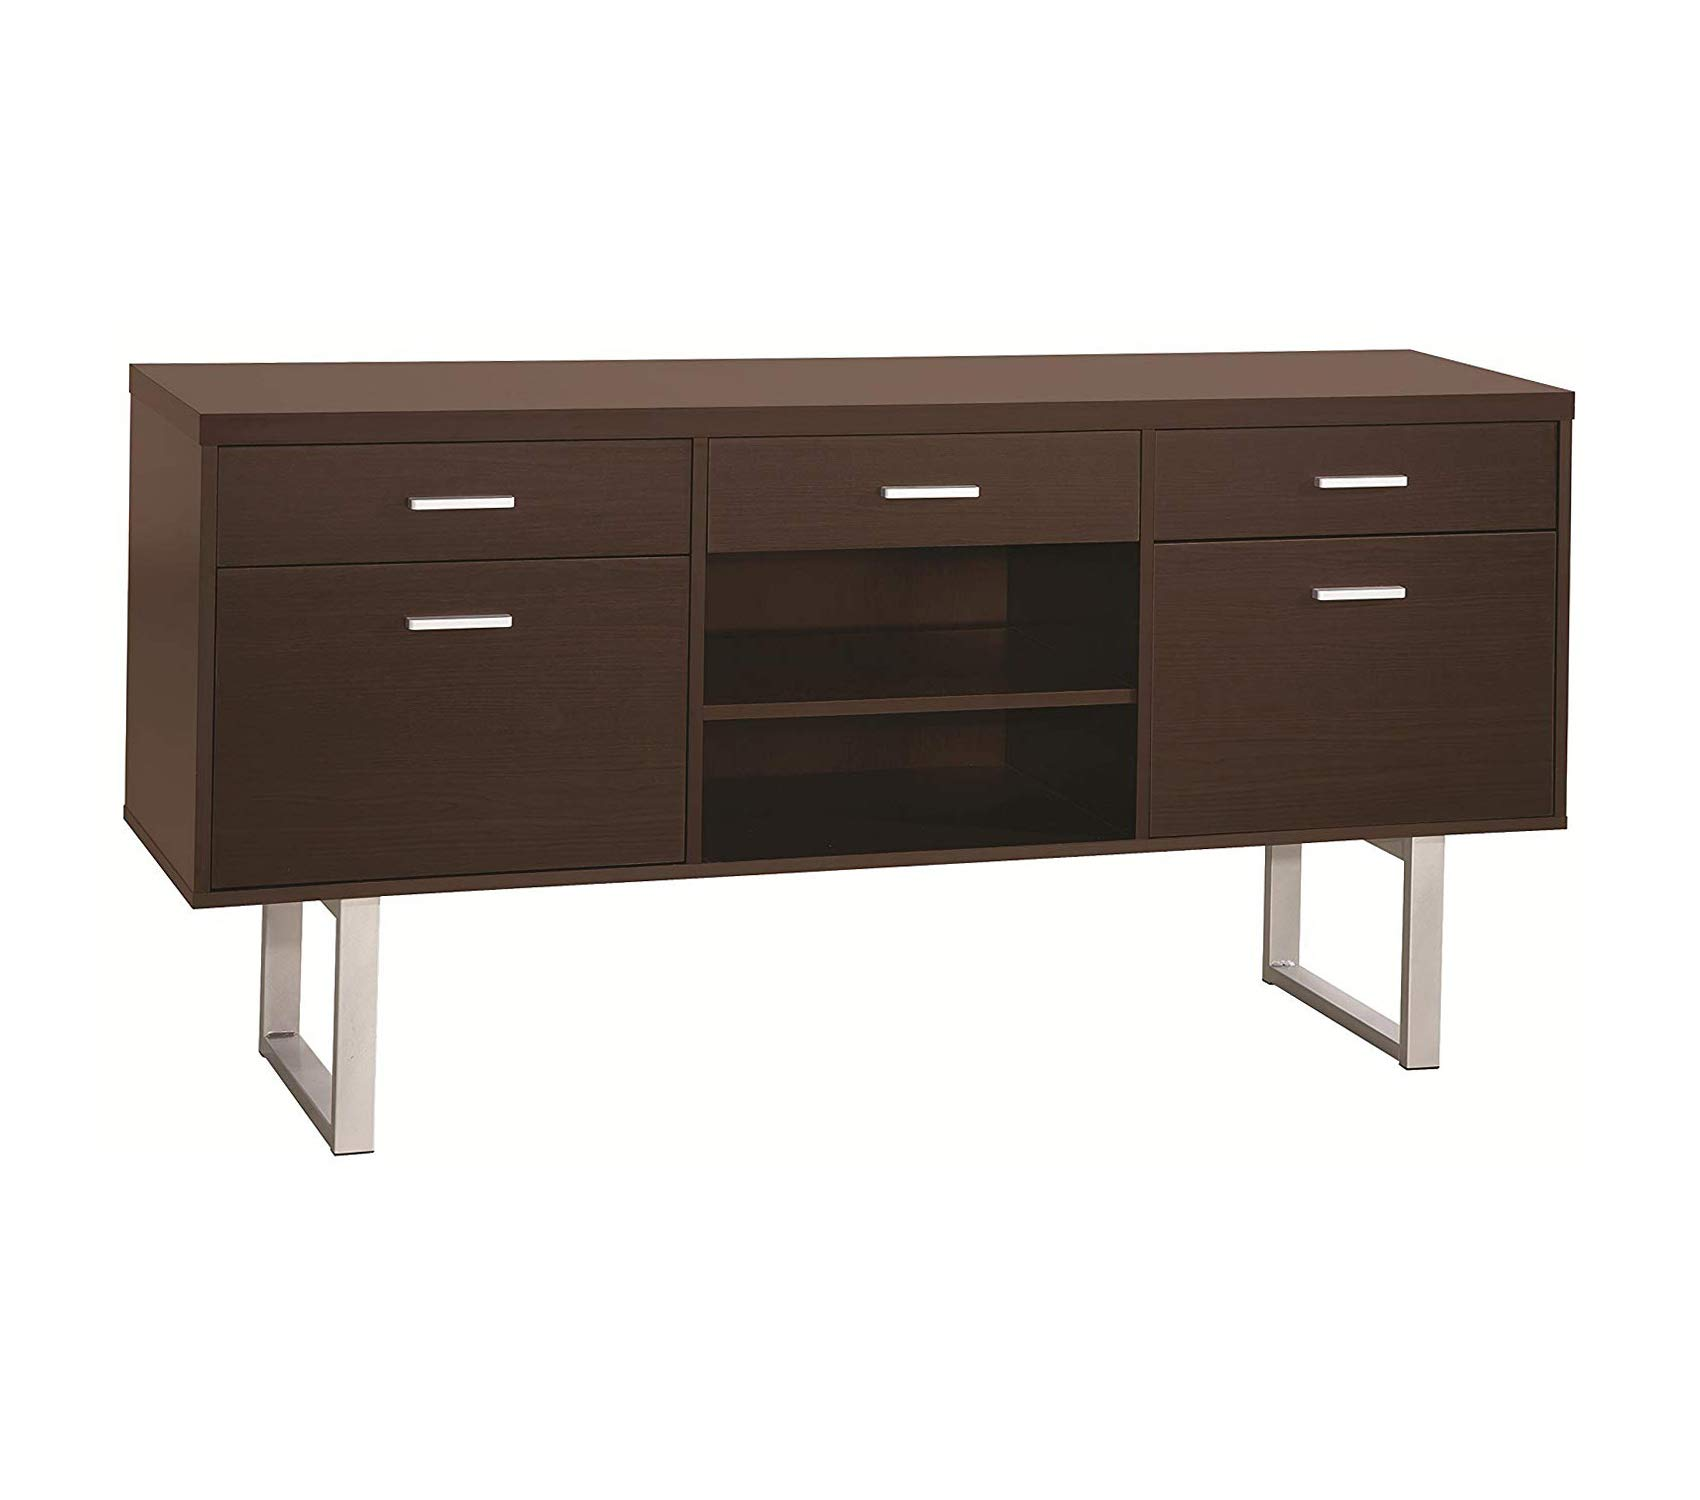 Cоаstеr Hоmе Furnishings Office Home Furniture Premium Credenza with Metal Sled Legs Cappuccino